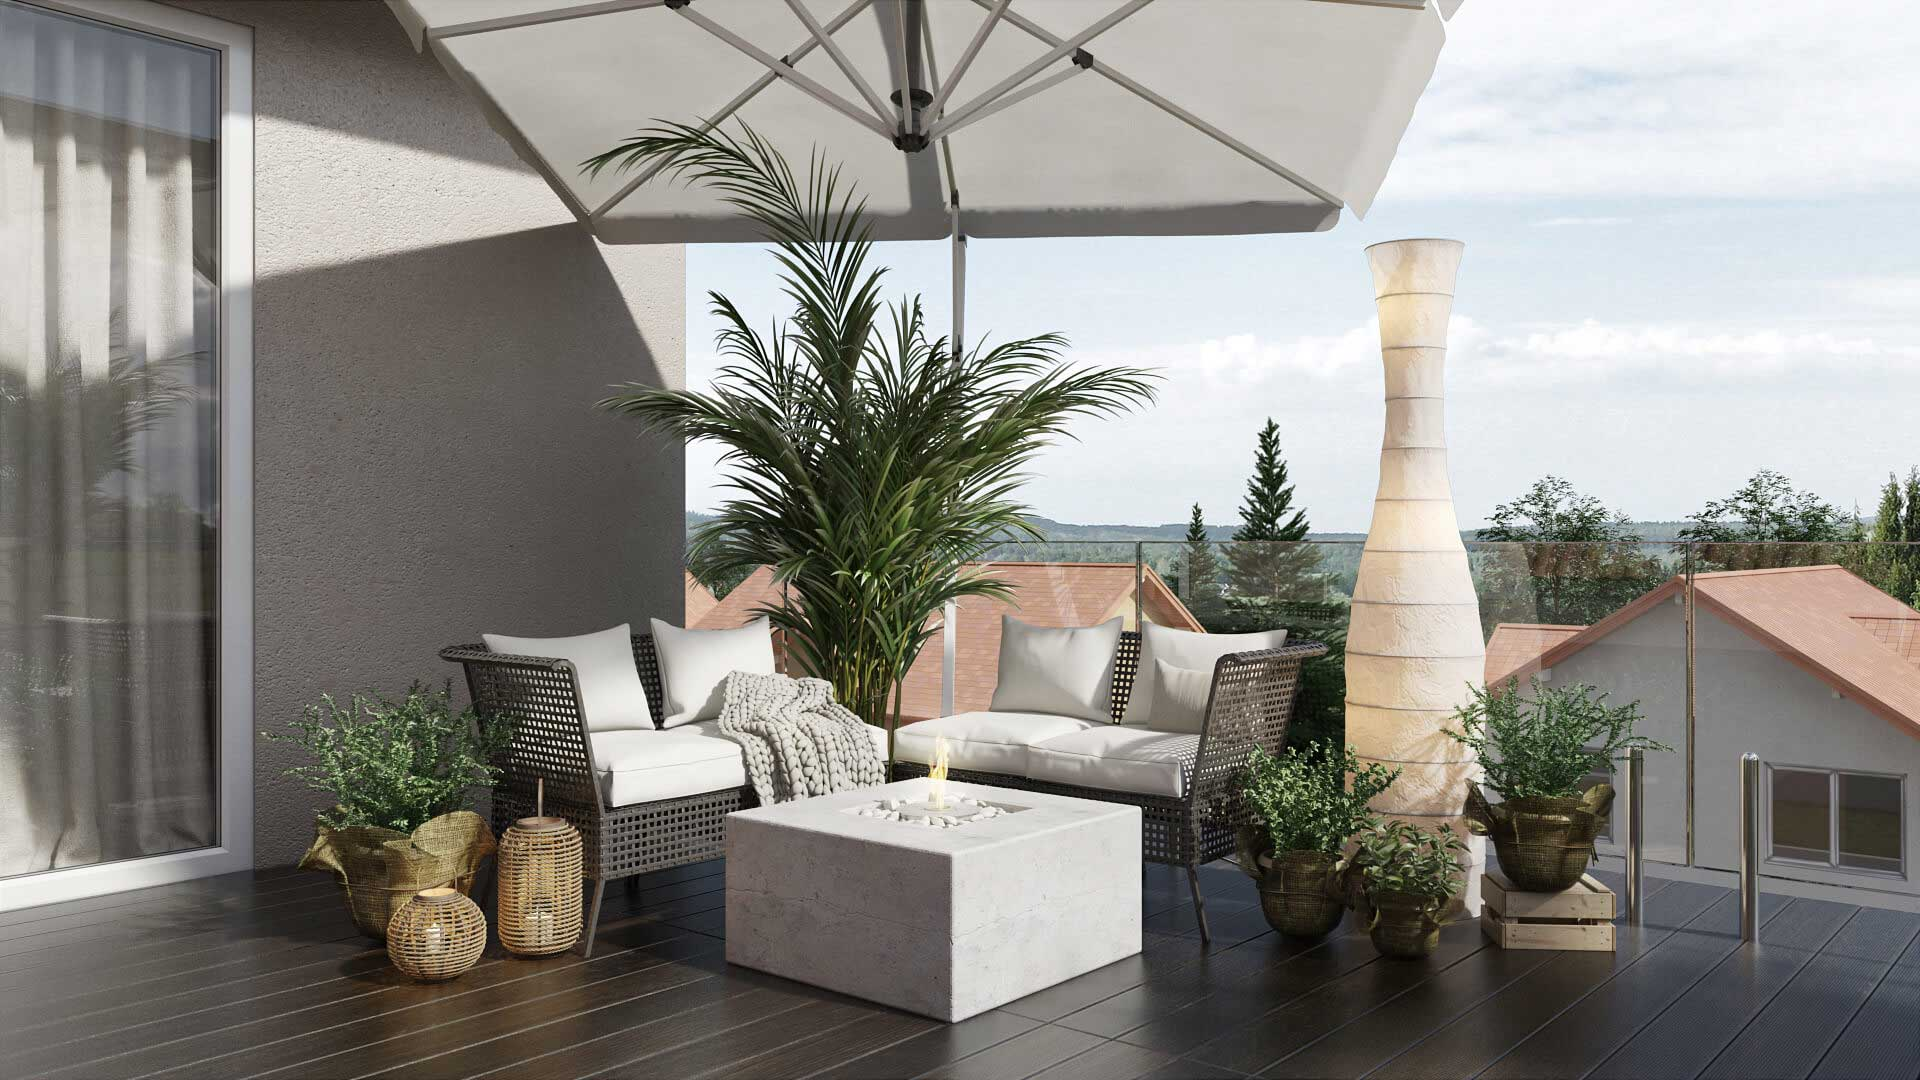 An Outdoor Furniture Set on a Rooftop Terrace